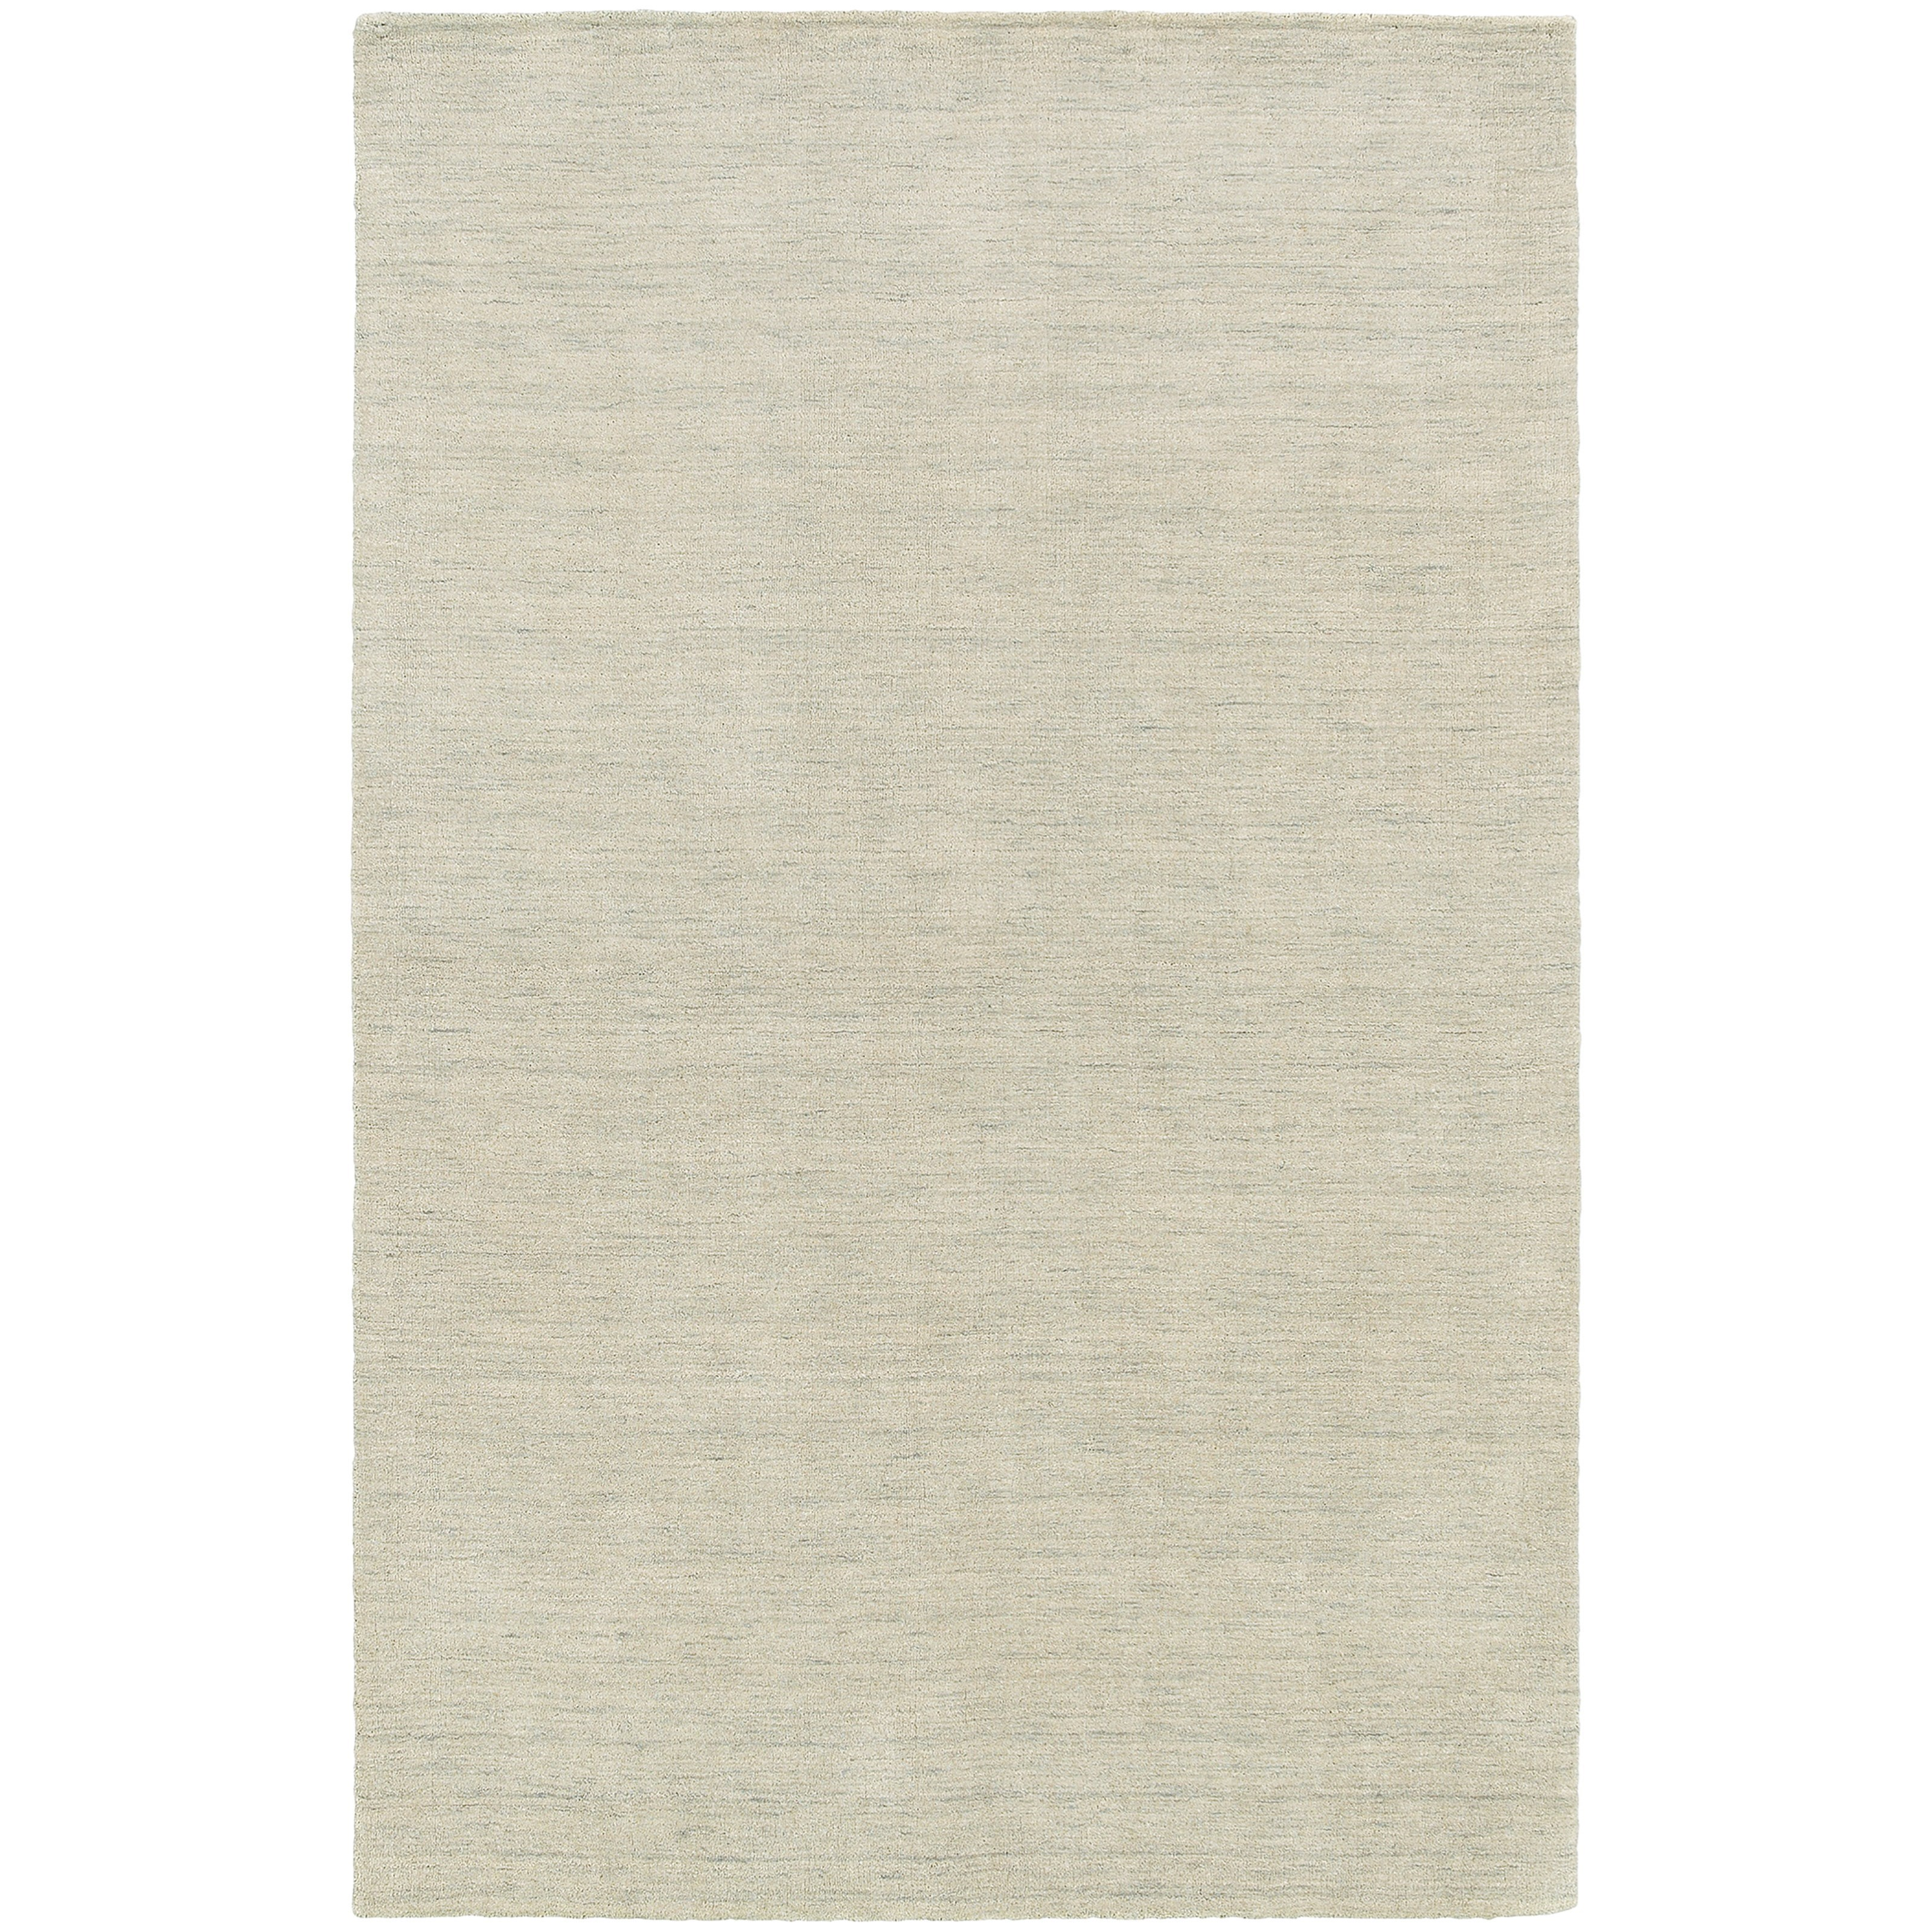 "Aniston 2' 6"" X  8' 0"" Rug Runner by Oriental Weavers at Steger's Furniture"